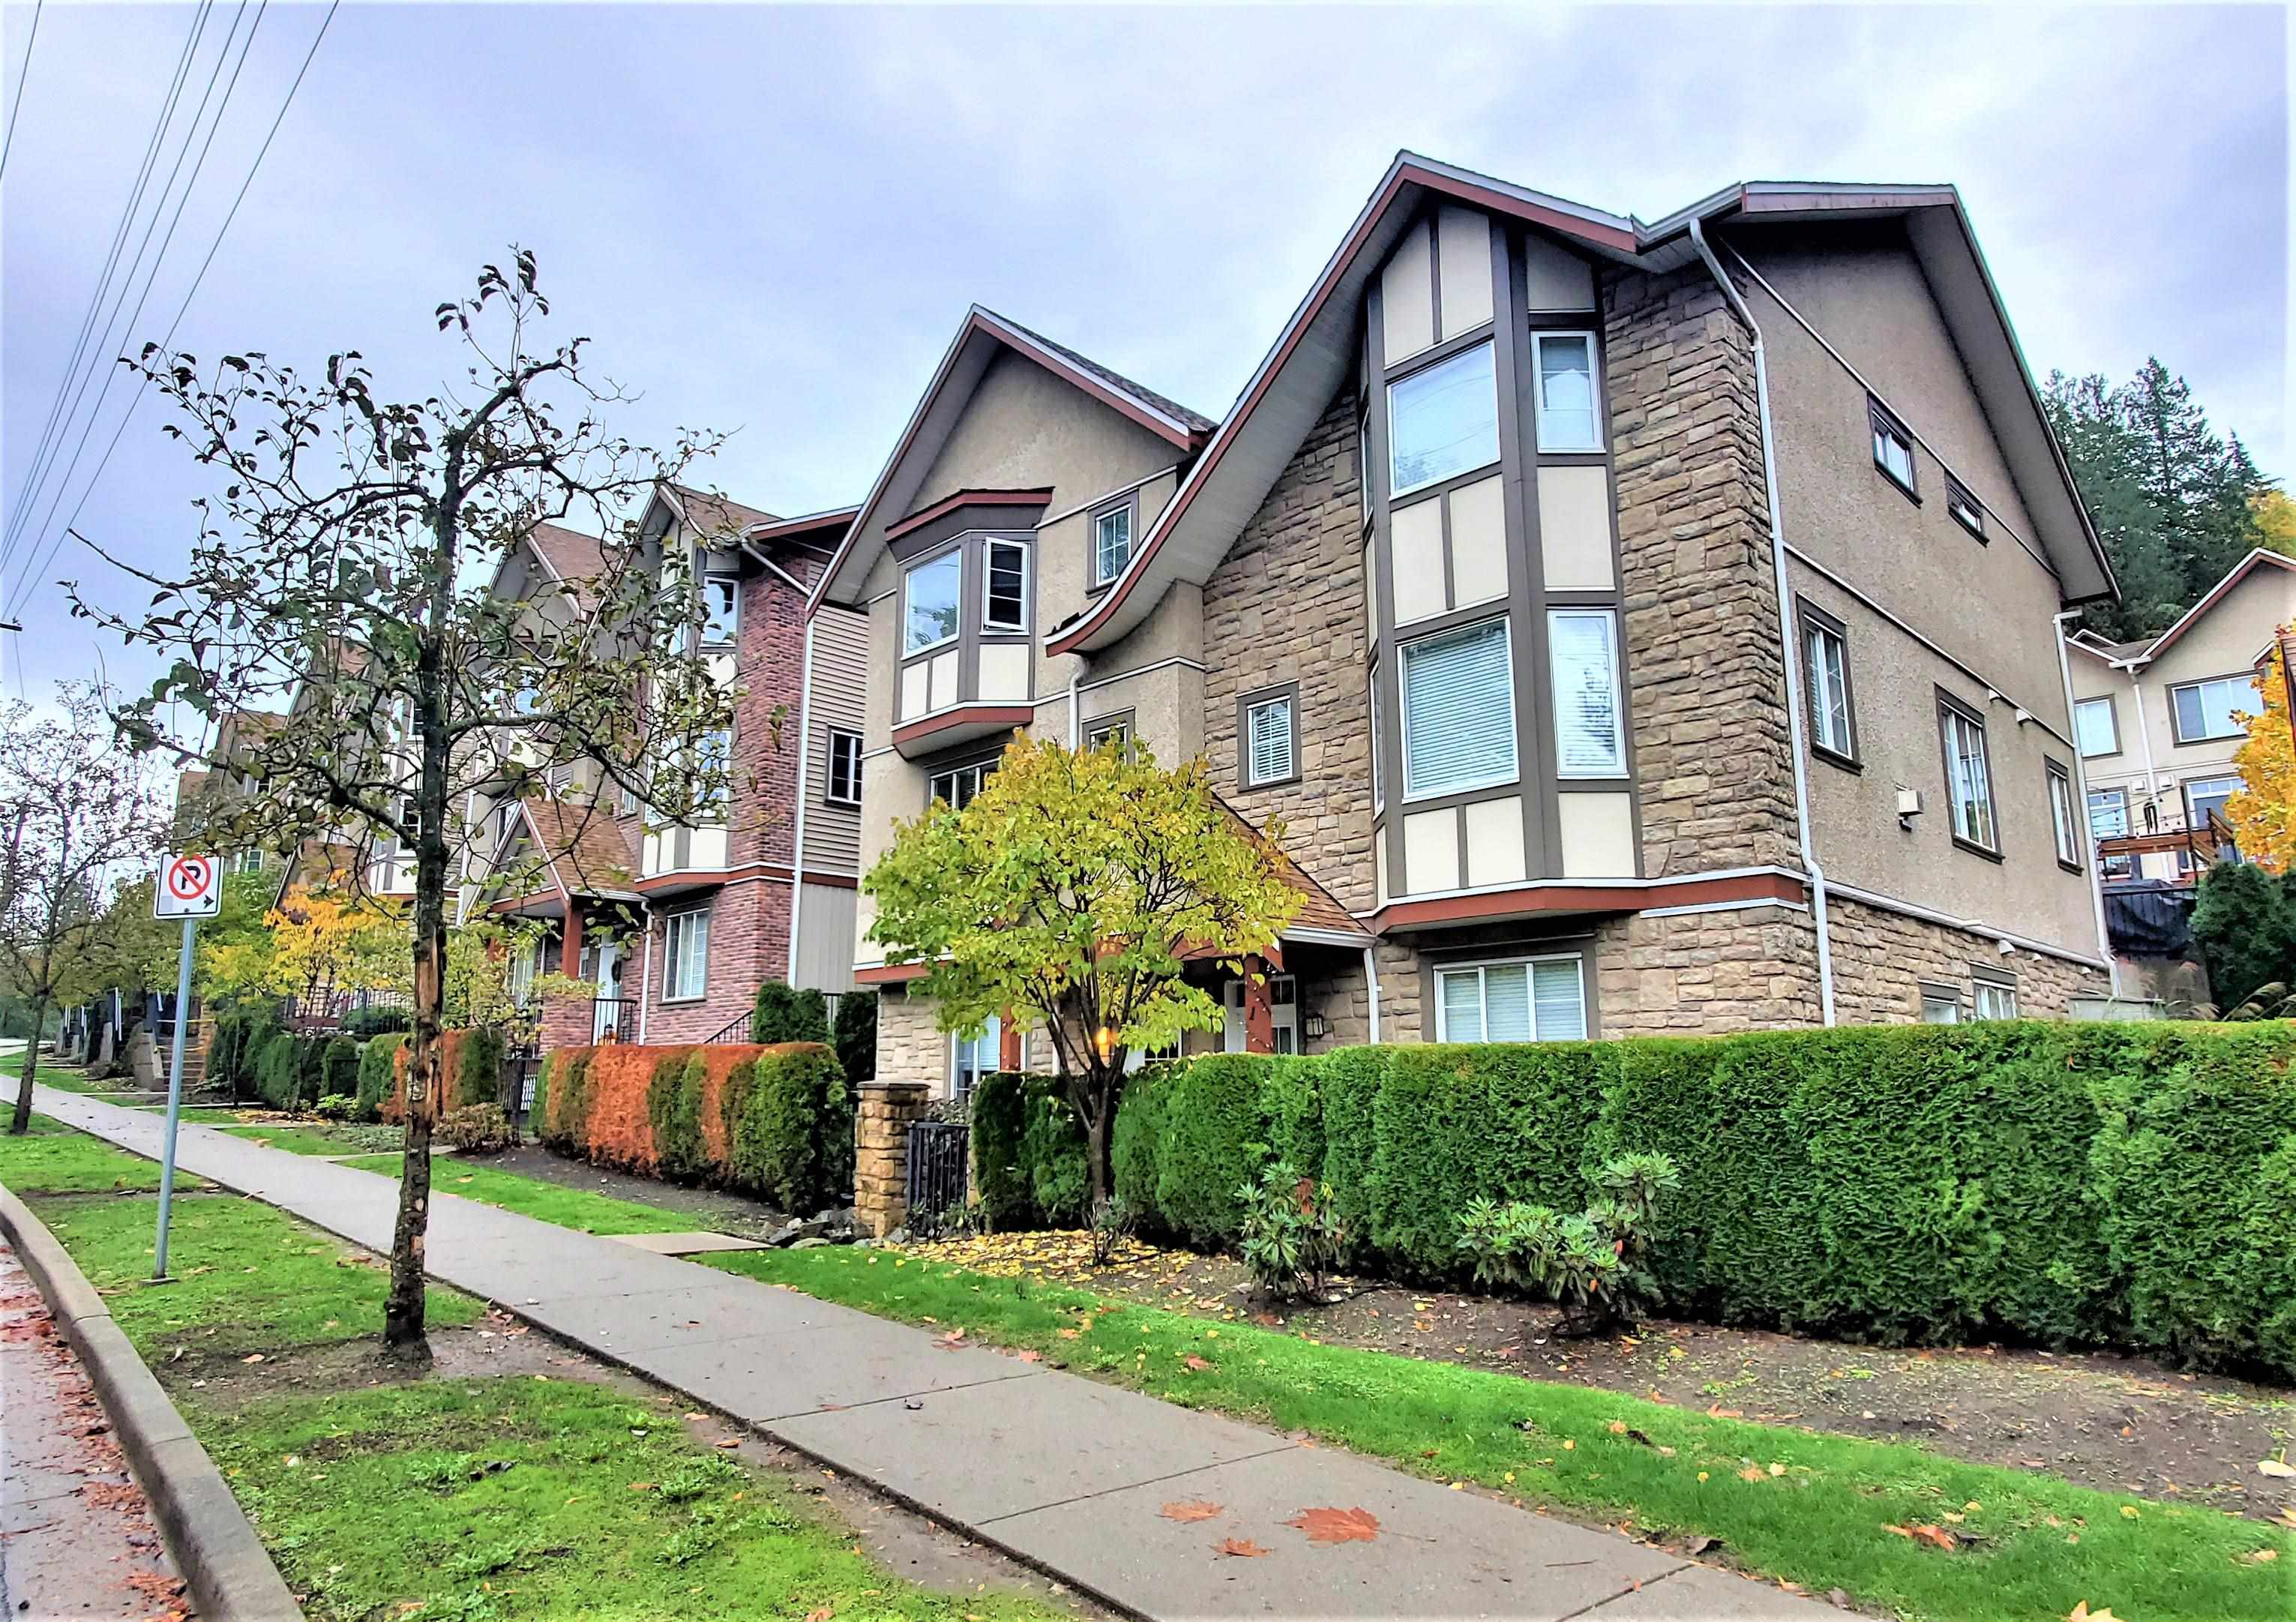 2 35626 MCKEE ROAD - Abbotsford East Townhouse for sale, 4 Bedrooms (R2626617) - #1